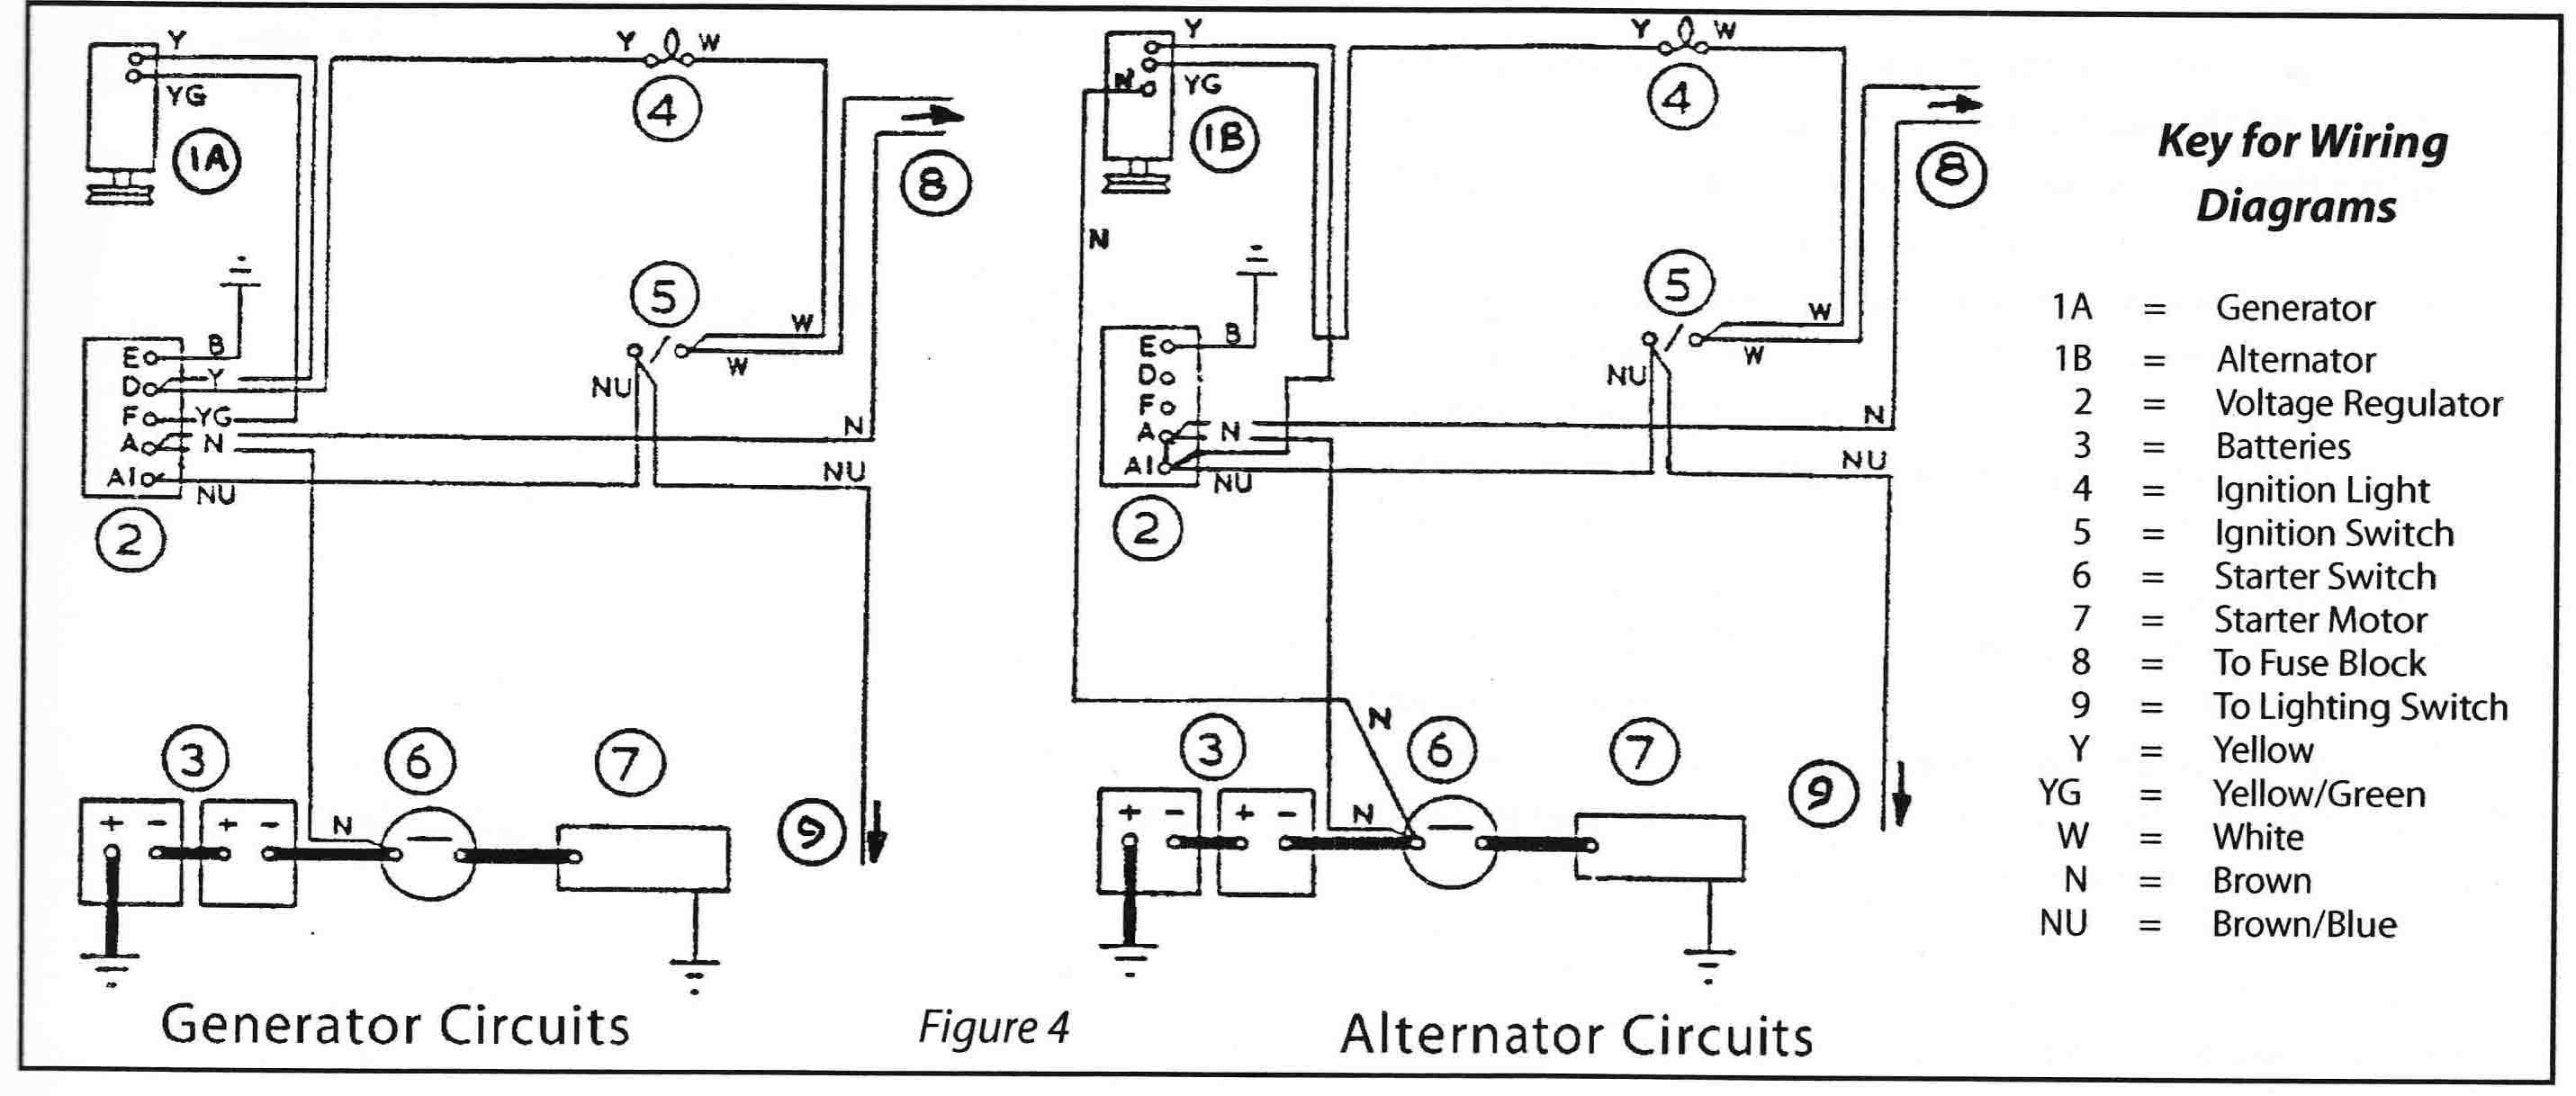 V26No1_Fig4 alternator conversion for the mga north american mga register converting generator to alternator wiring diagram at gsmx.co